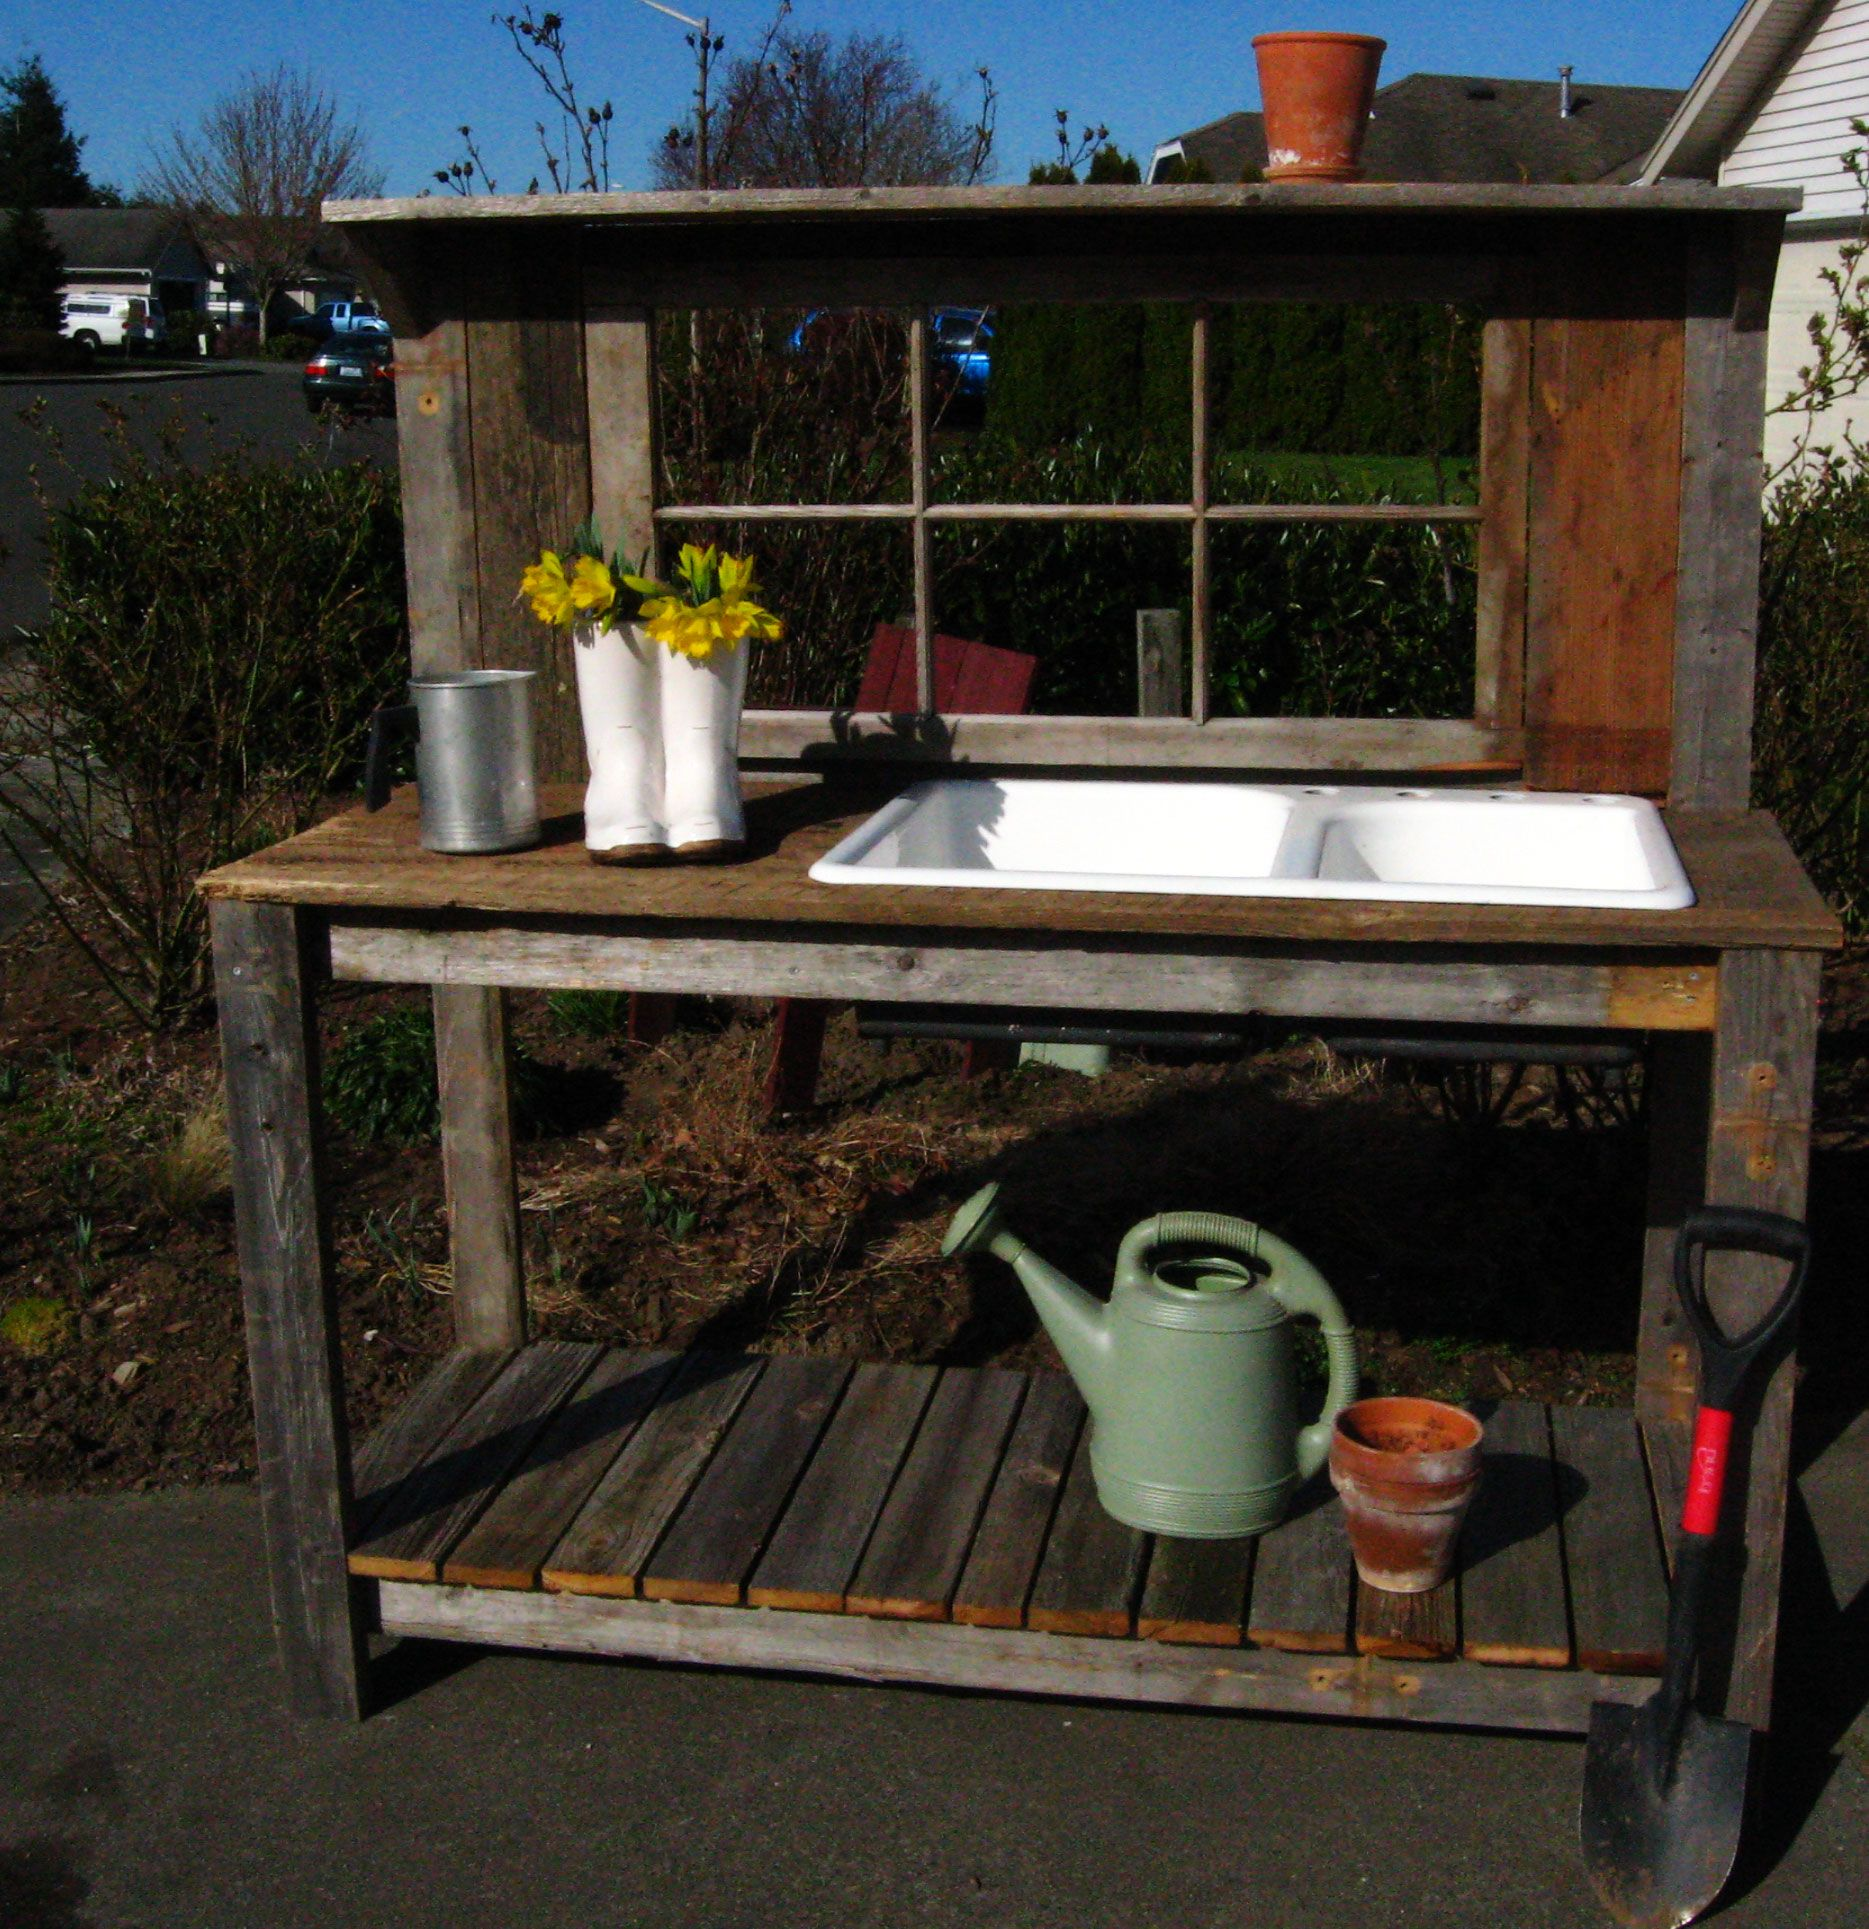 Garden Potting Bench Potting Bench with Sink Rustic Window Sink